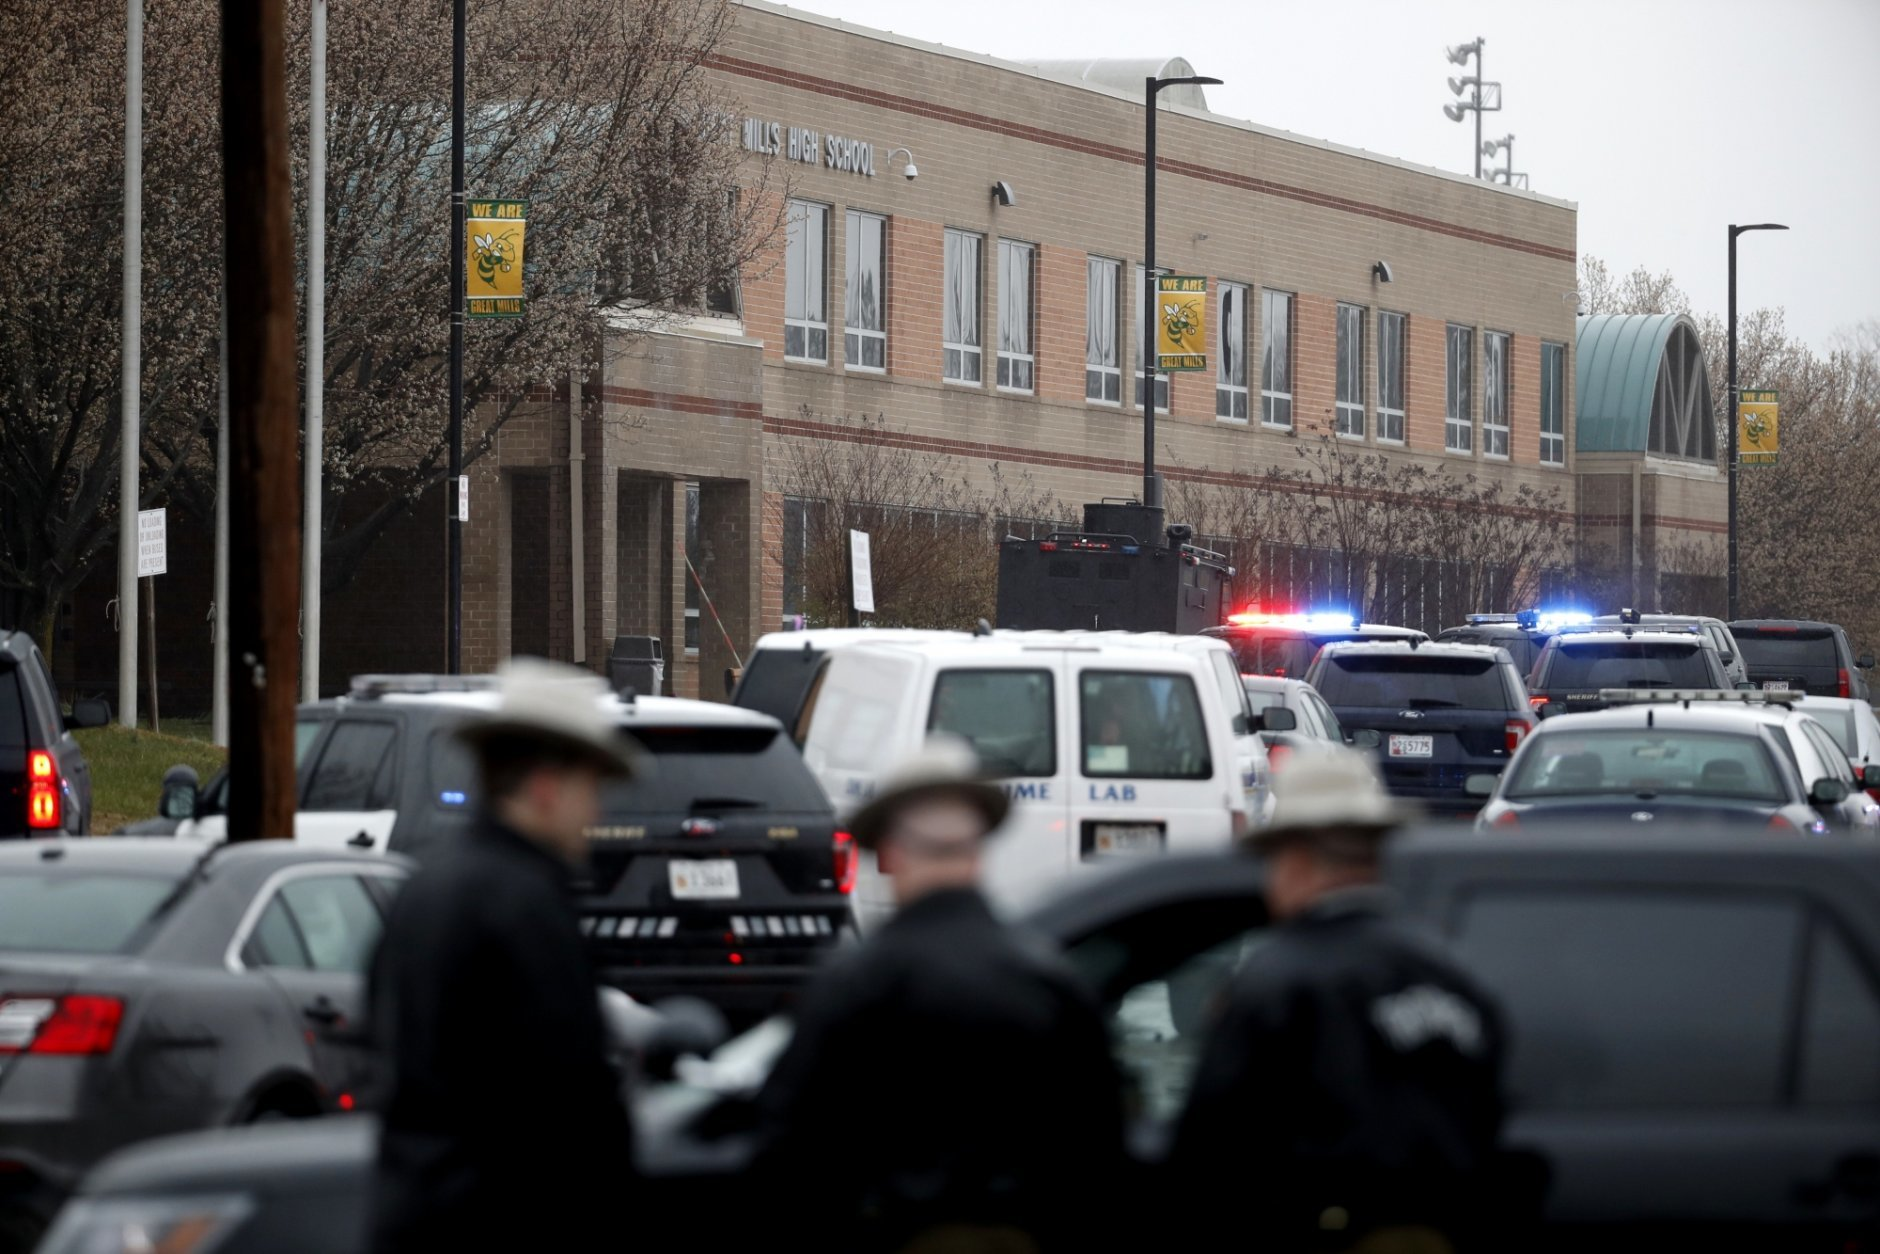 """Deputies and federal agents converge on Great Mills High School, the scene of a shooting, Tuesday morning, March 20, 2018 in Great Mills, Md. The shooting left at least three people injured including the shooter. Authorities said the situation is """"contained."""" (AP Photo/Alex Brandon  )"""